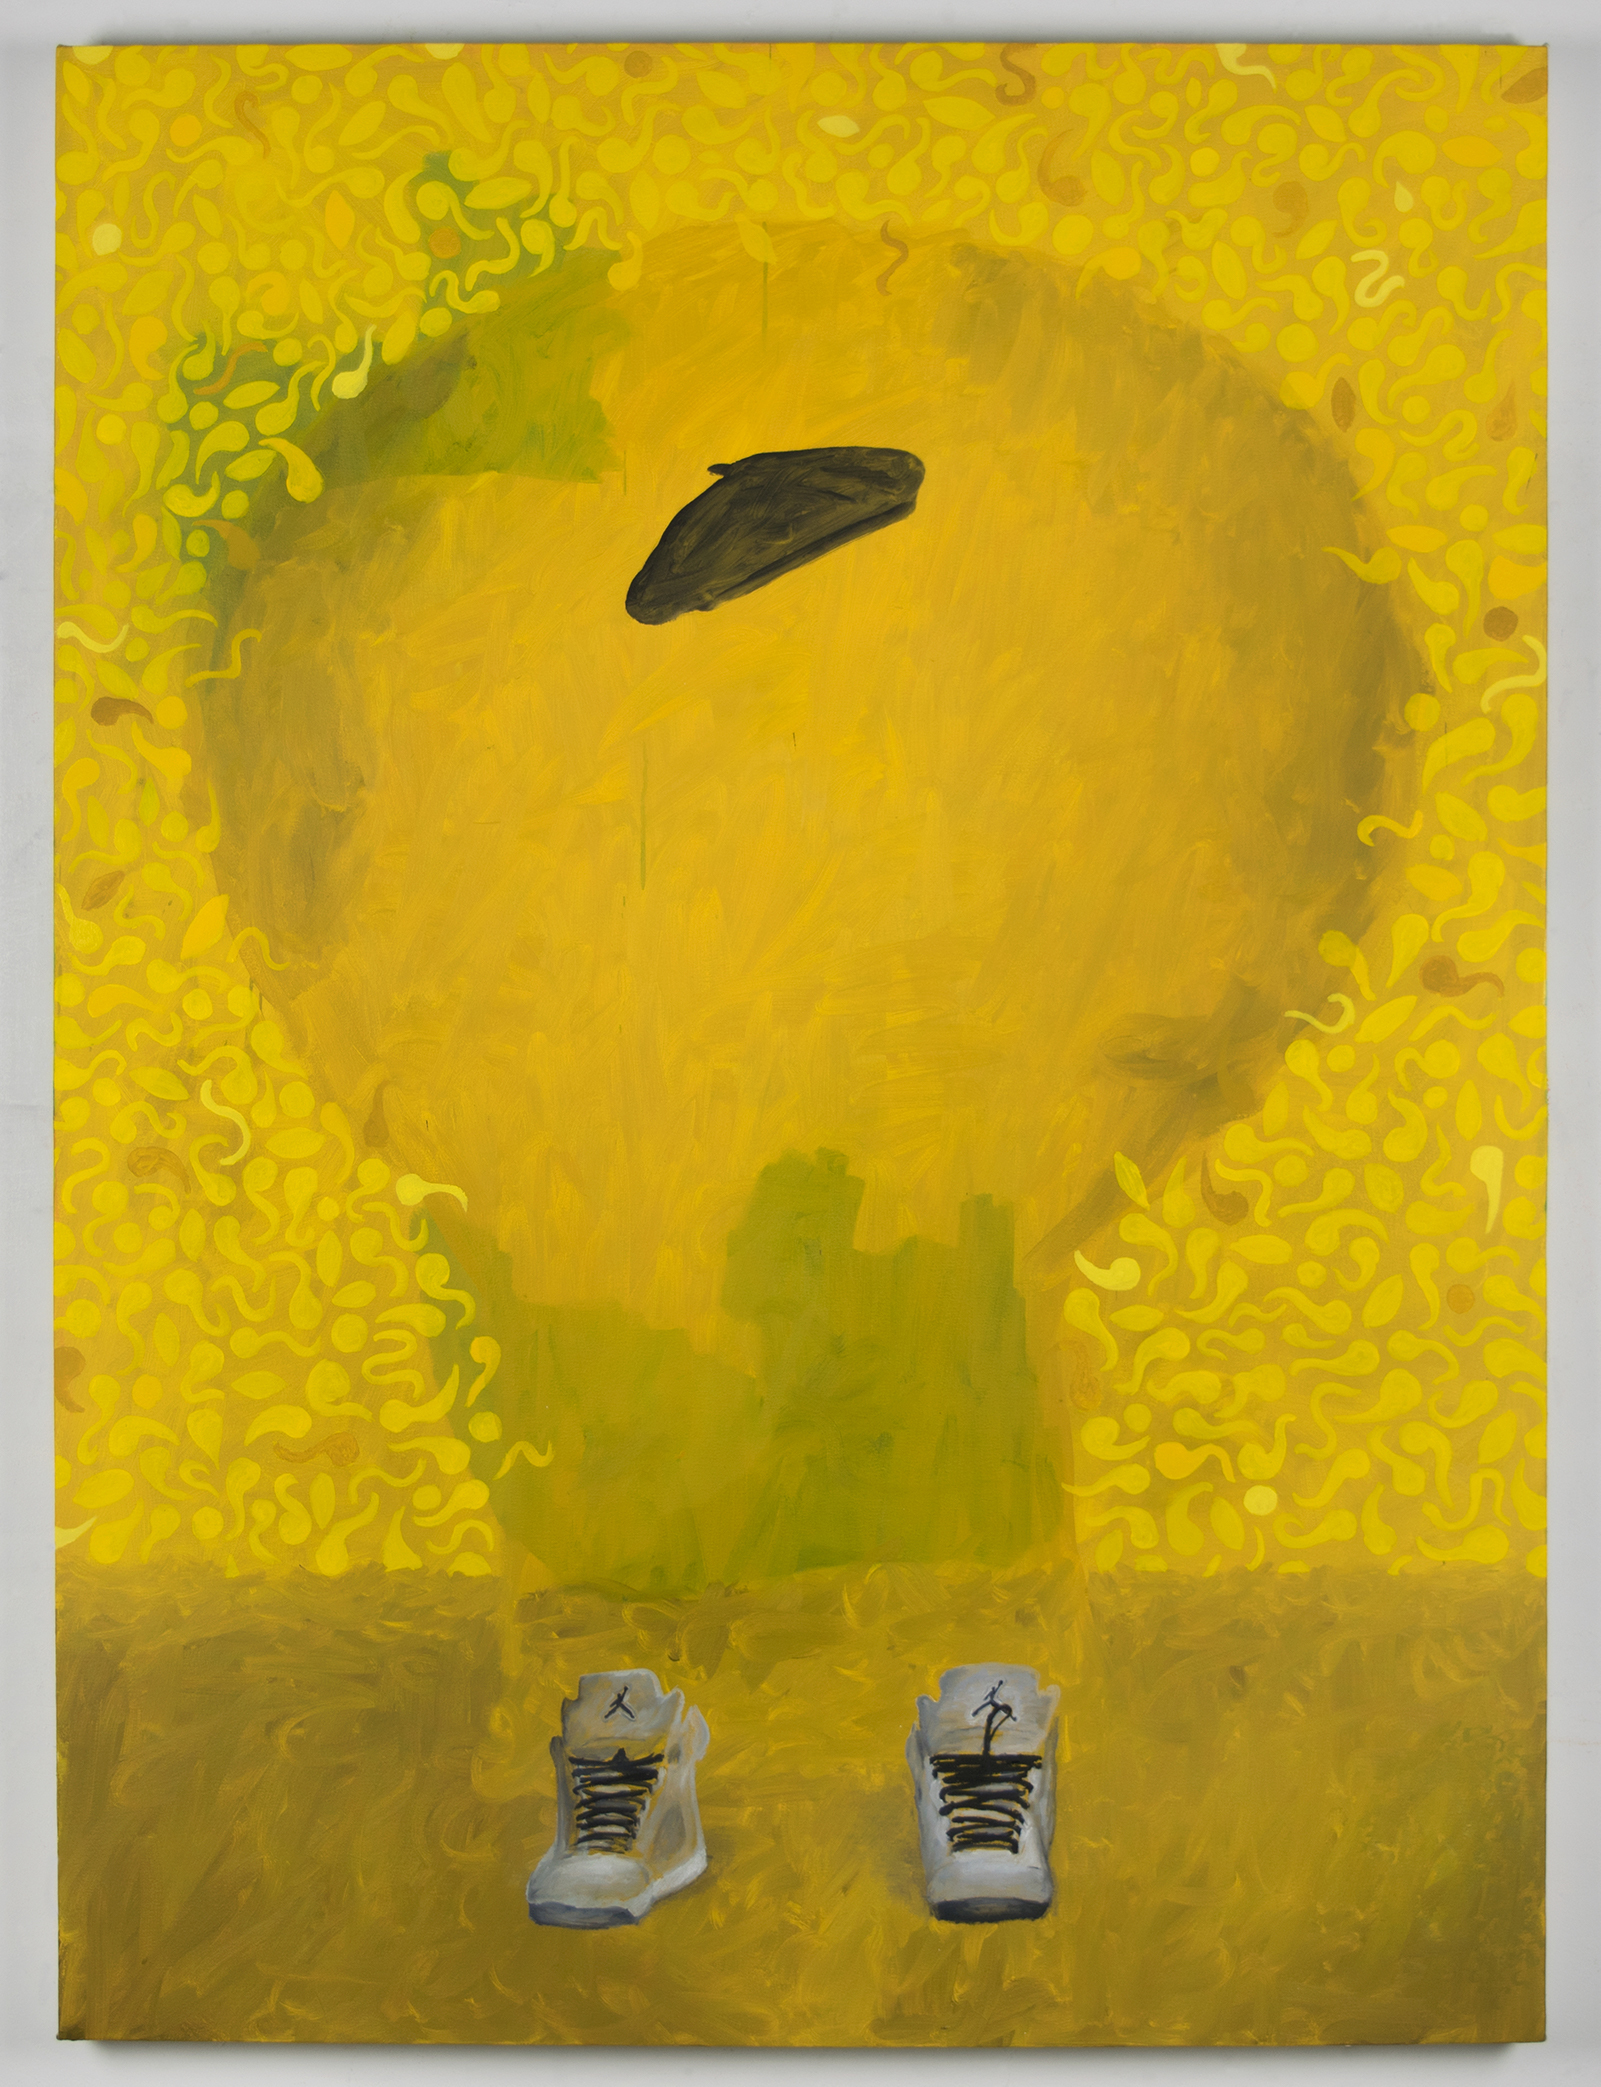 A yellow painting with various textures and two white tennis shoes